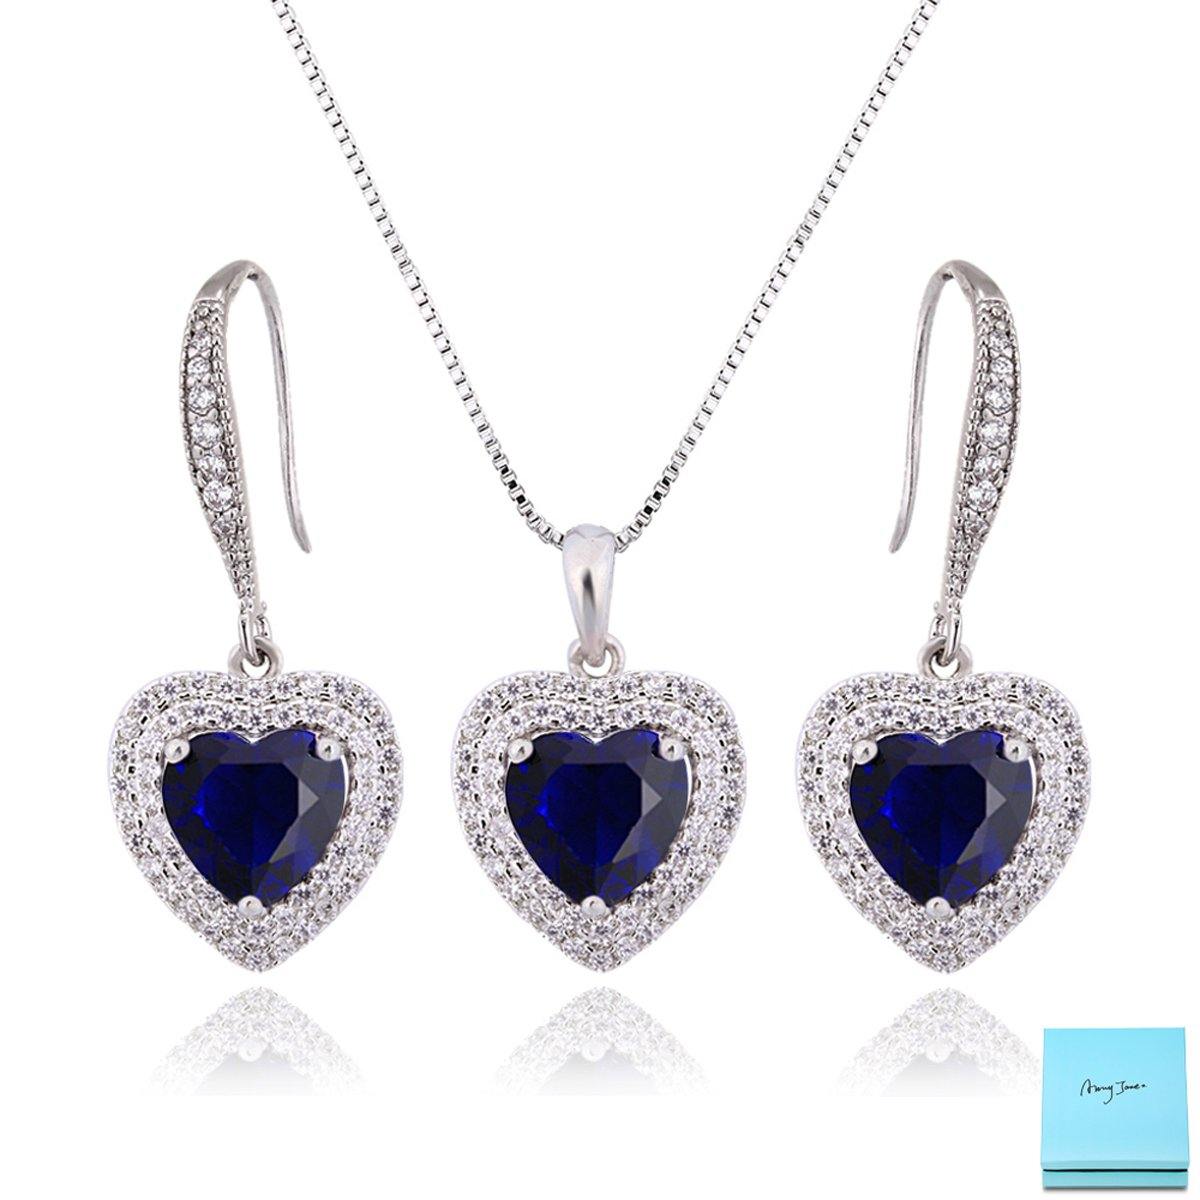 Love Jewelry Set for Women - Navy Sapphire Crystal Cubic Zirconia Love Dangle Earring and Heart of the Ocean Necklace Gift Set for Wedding Engagement Anniversary September Birthstone Birthday Gift